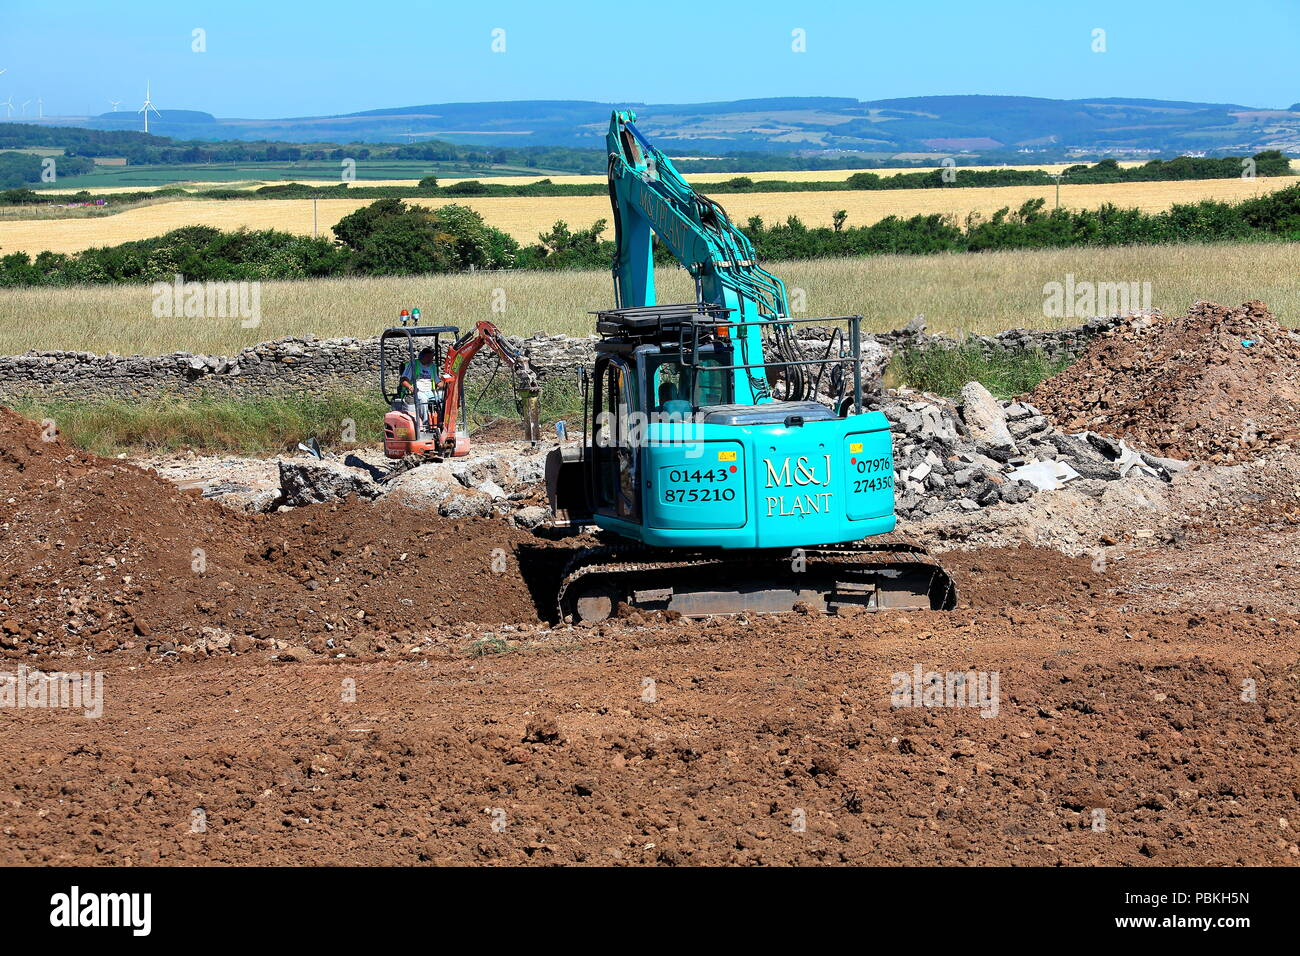 Large versus small in the plant machinery world, two diggers at work in a field being restored to farmland after completion of building works. - Stock Image